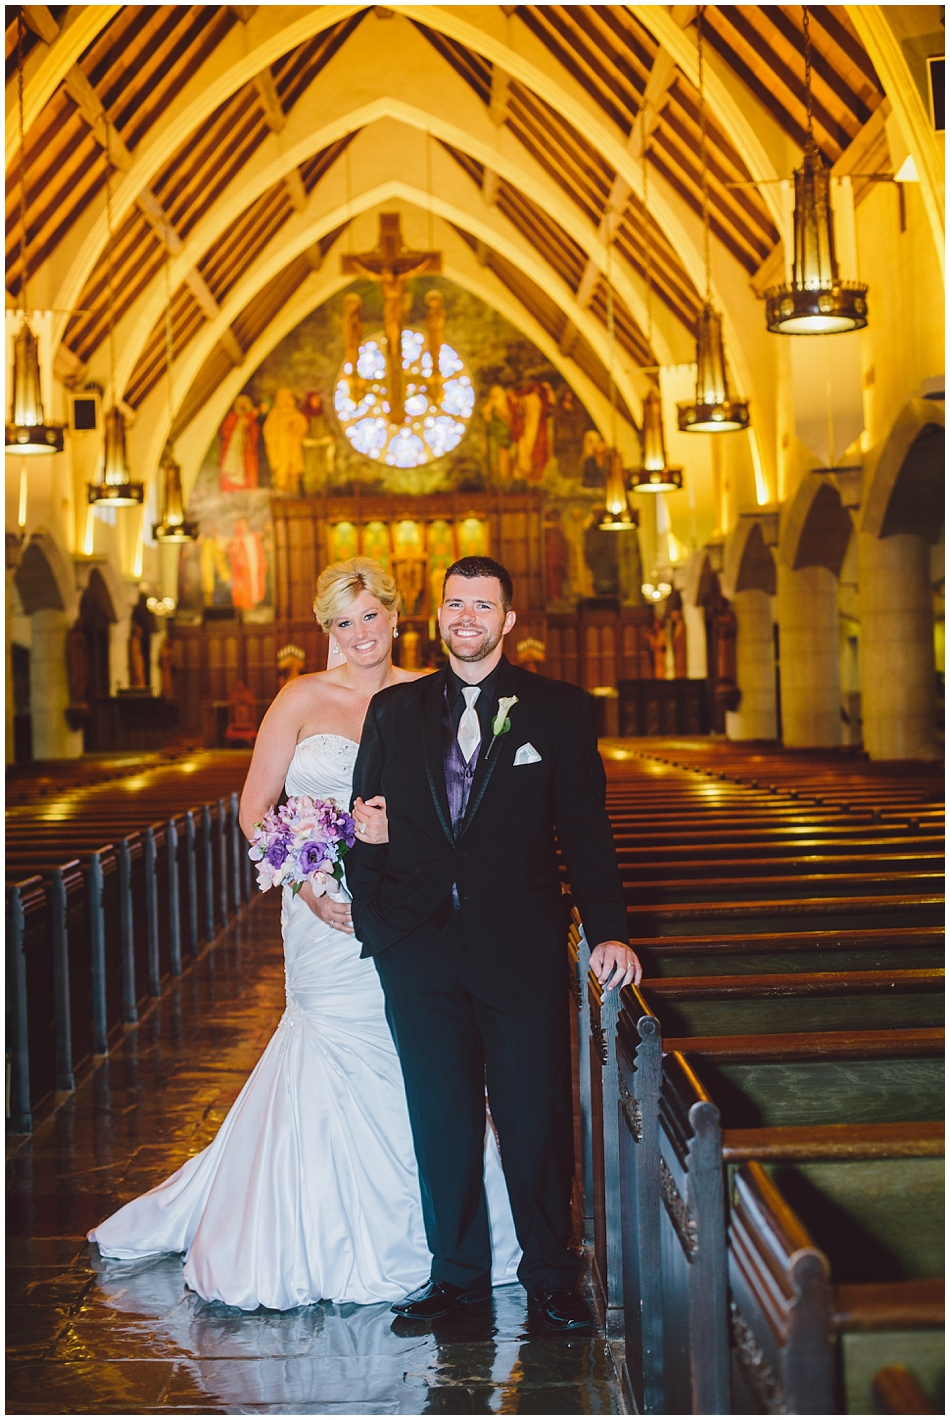 Formal wedding photo at st. margaret mary church omaha, ne